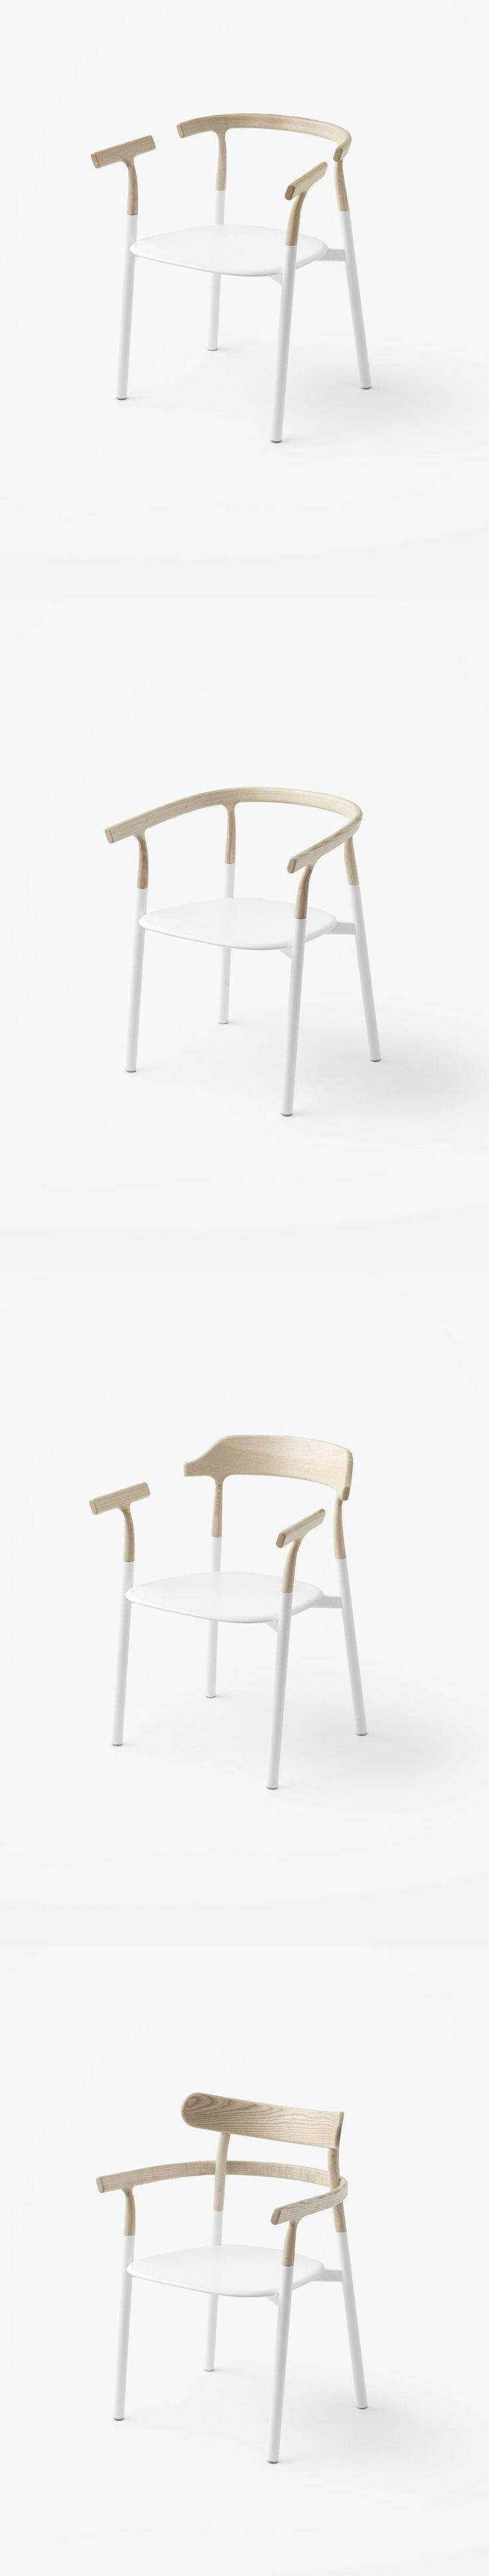 Twig Chair by Nendo #design #minimal #chair